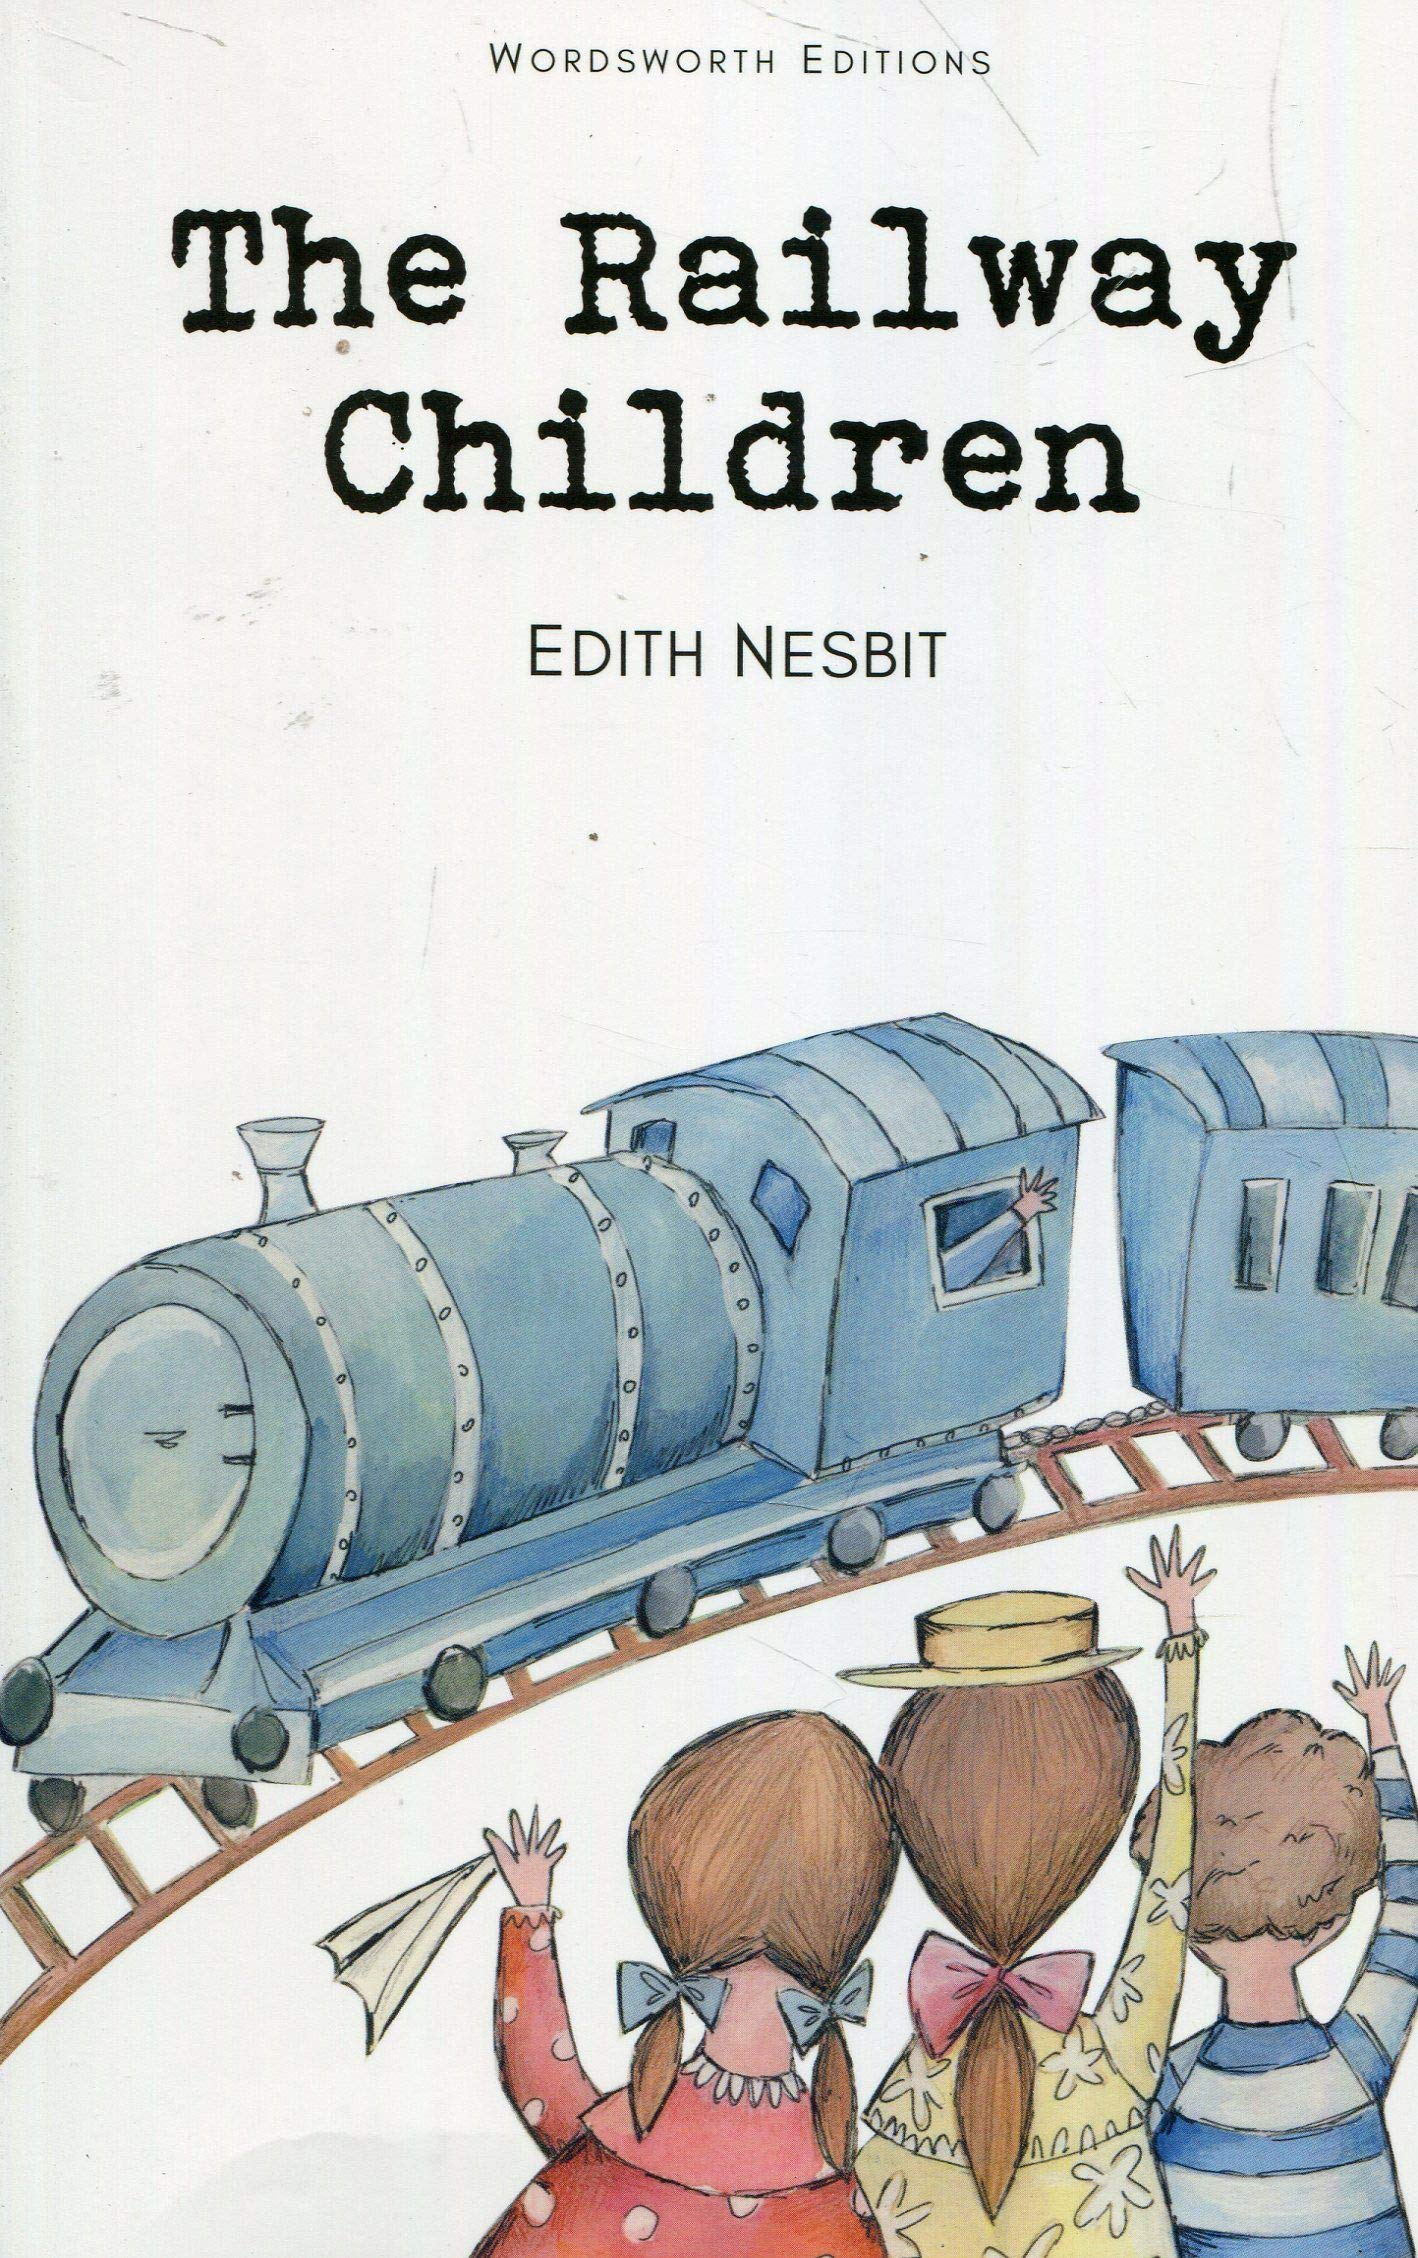 The Railway Children Wordsworth Children's Classics: Amazon.co.uk: Nesbit,  E.: Books